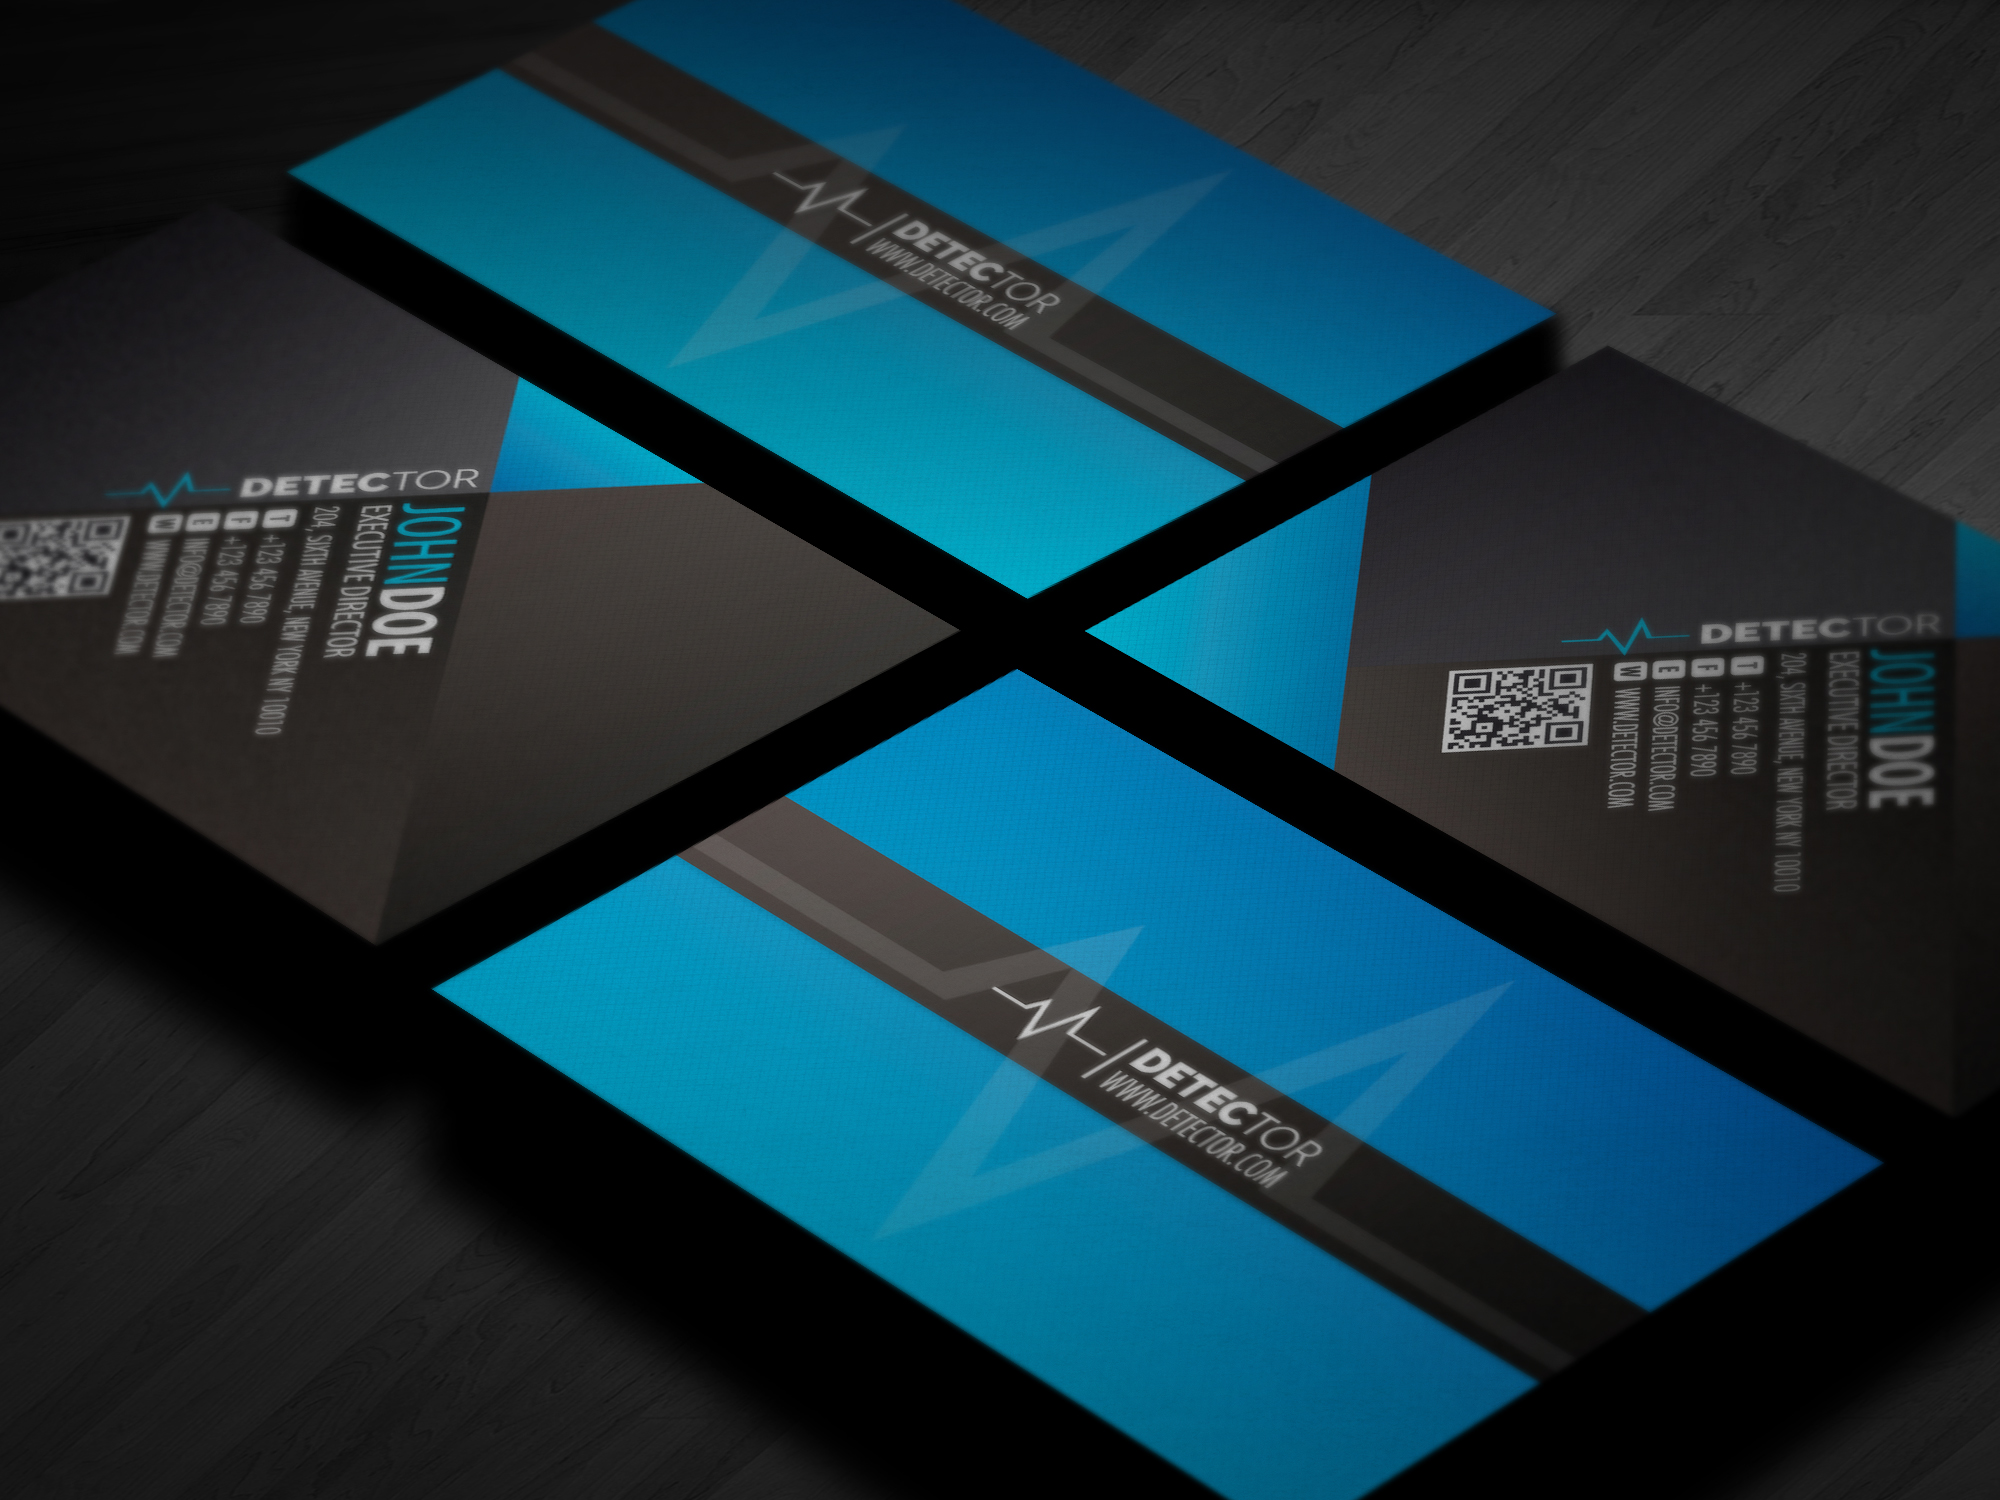 Detector Business card design ~ Business Card Templates on Creative ...: https://creativemarket.com/lemongraphic.sg/54363-Detector-Business...